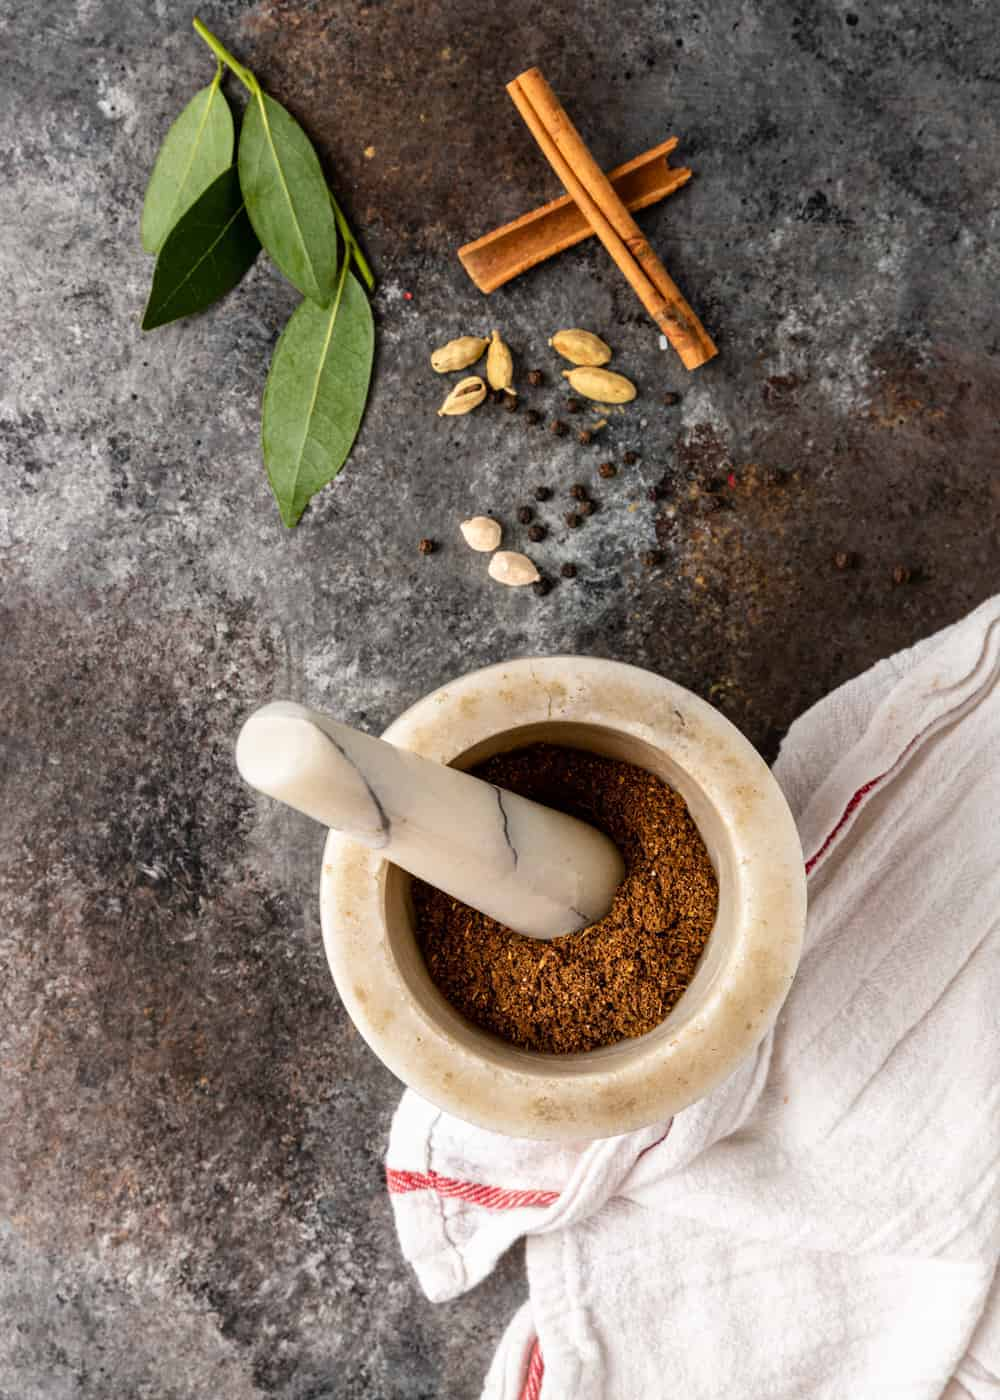 mortar and pestle with garam masala seasoning surrounded by ingredients